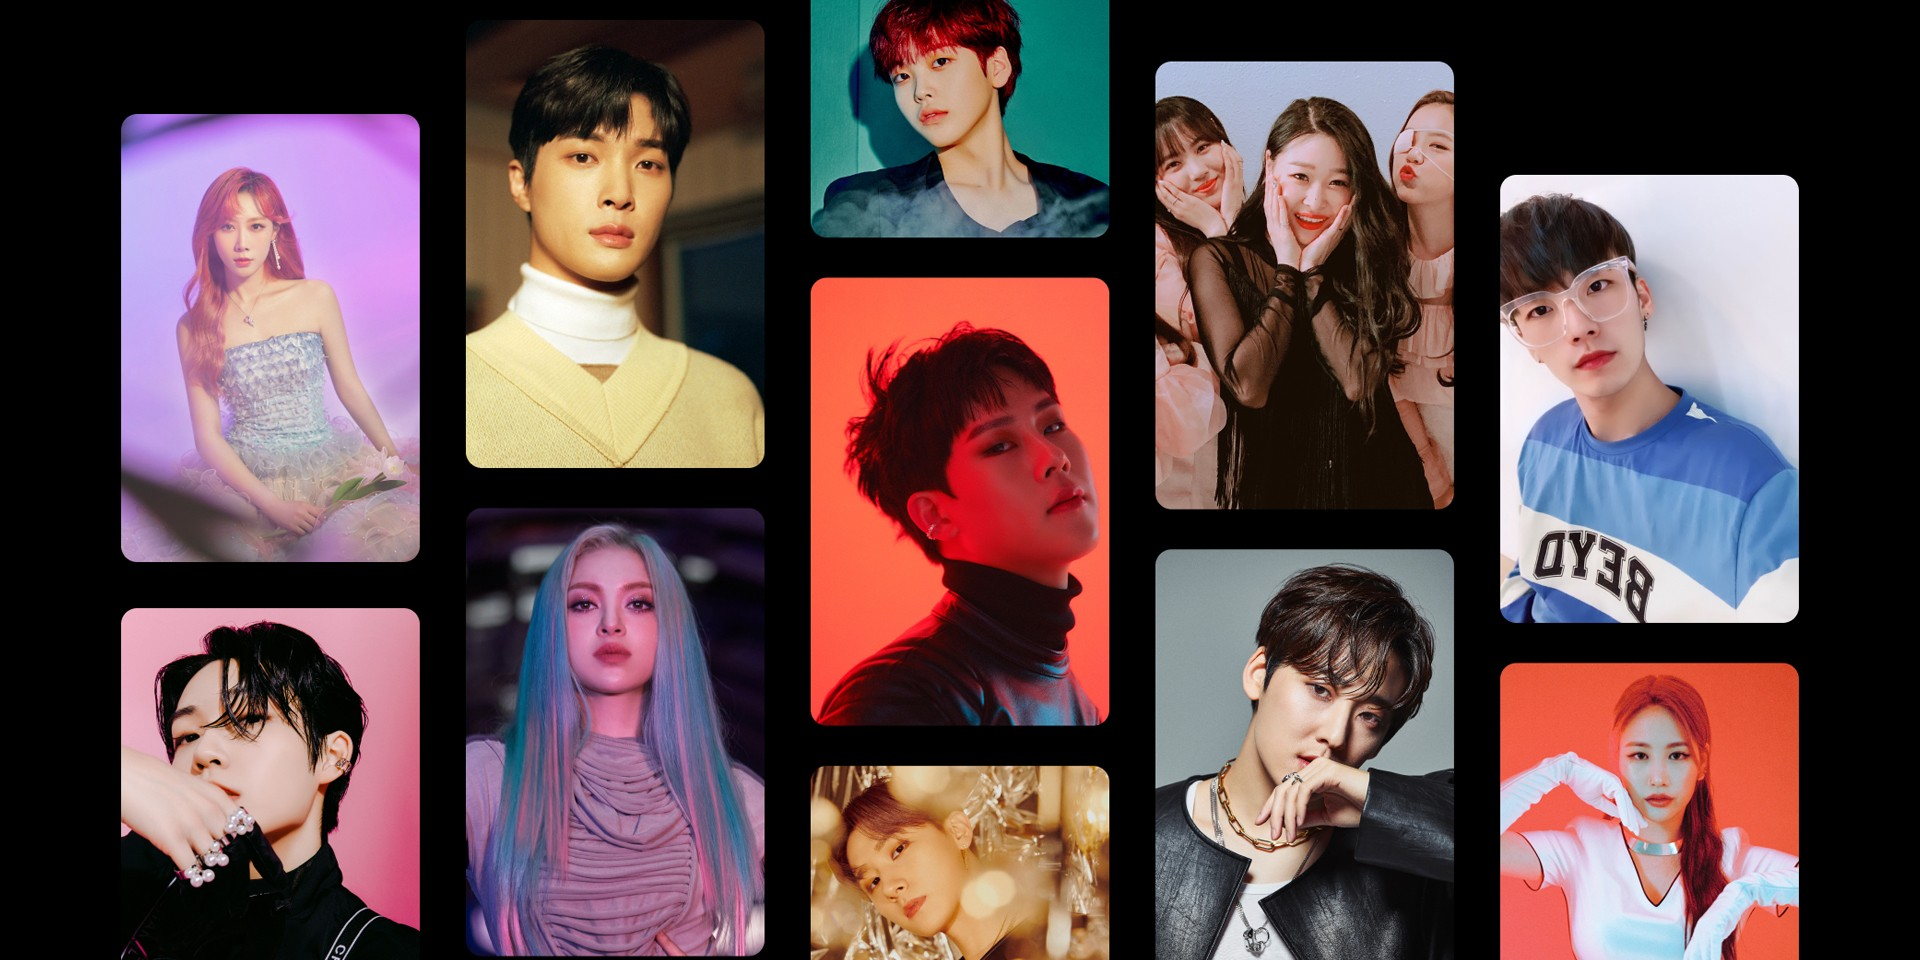 Step into the world of MONSTA X, NIve, Jamie, The Boyz, and many more with Airbnb's online festival Inside K-Pop